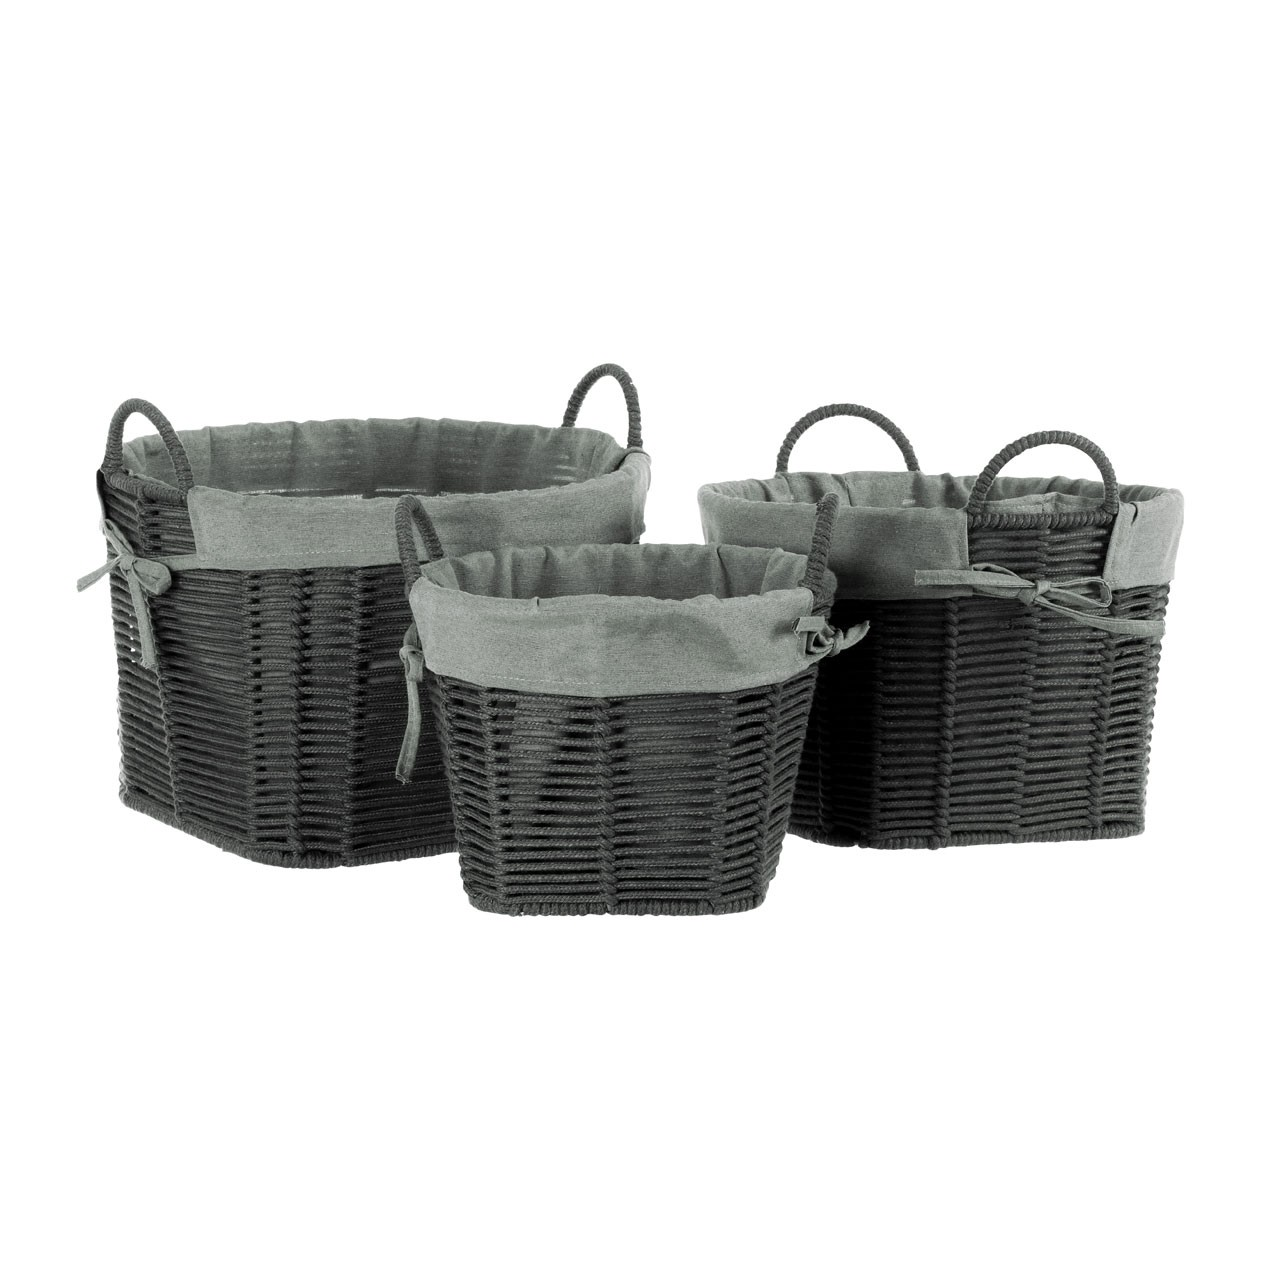 Prime Furnishing LIDA Storage Baskets, Dark Grey - Set of 3